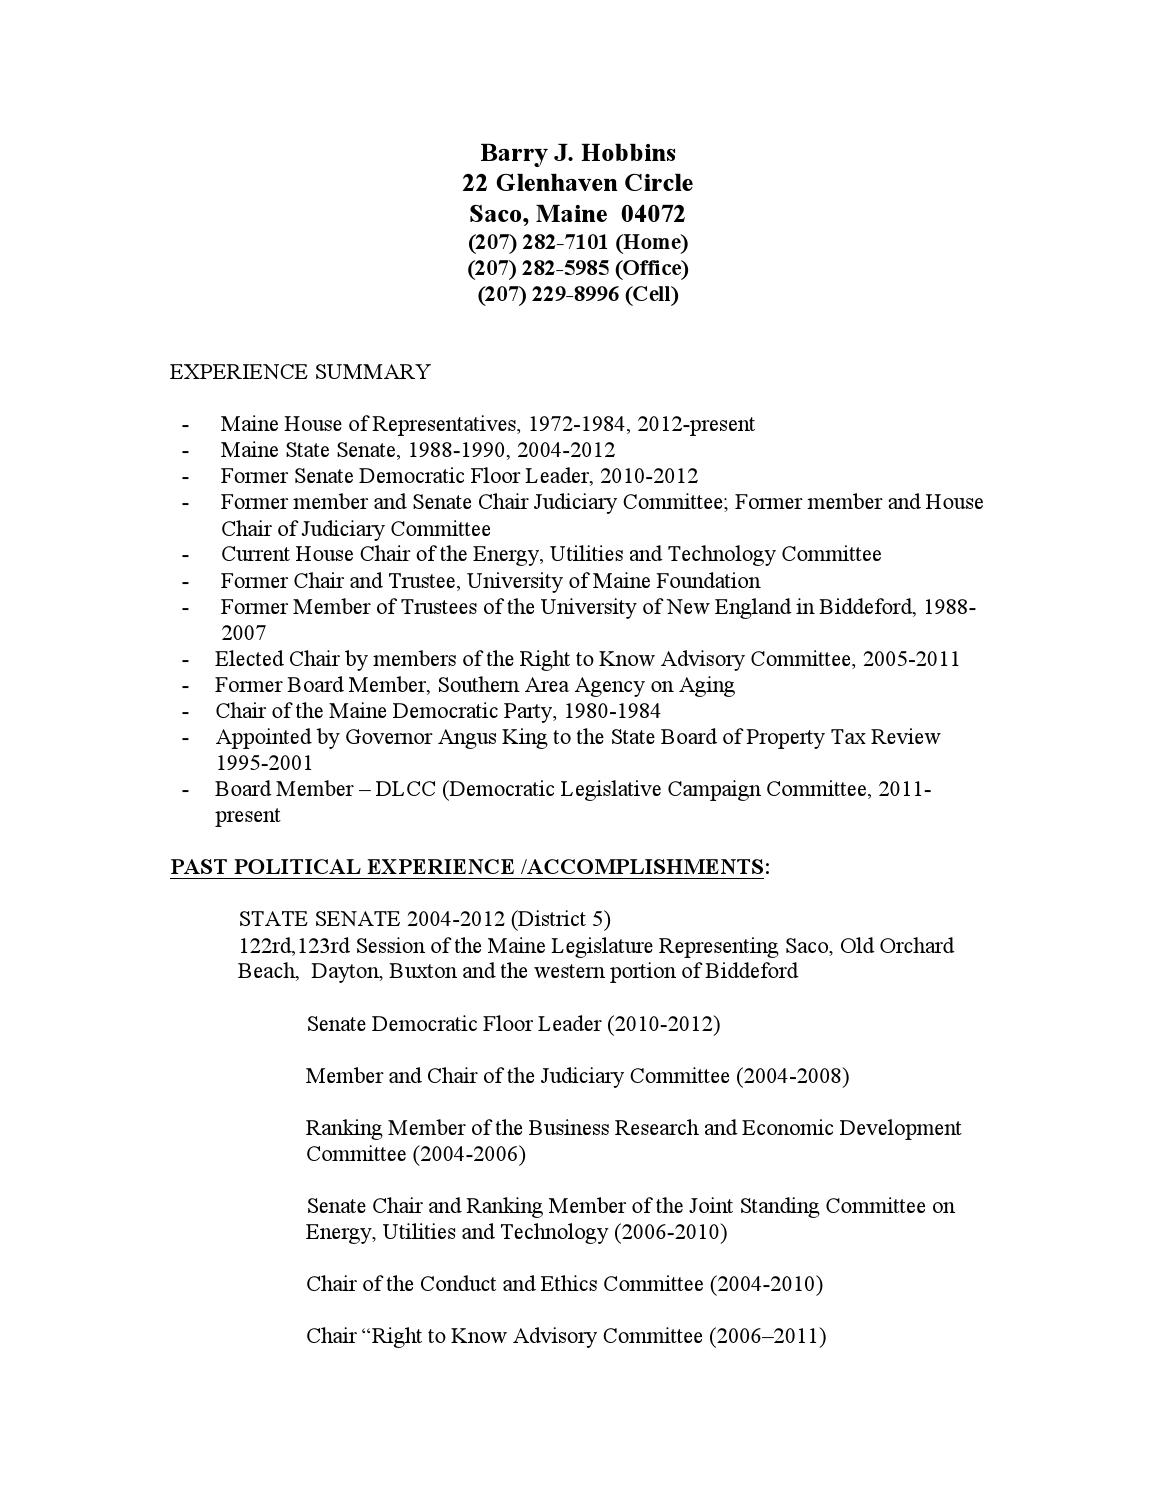 resume barry hobbins by public affairs info